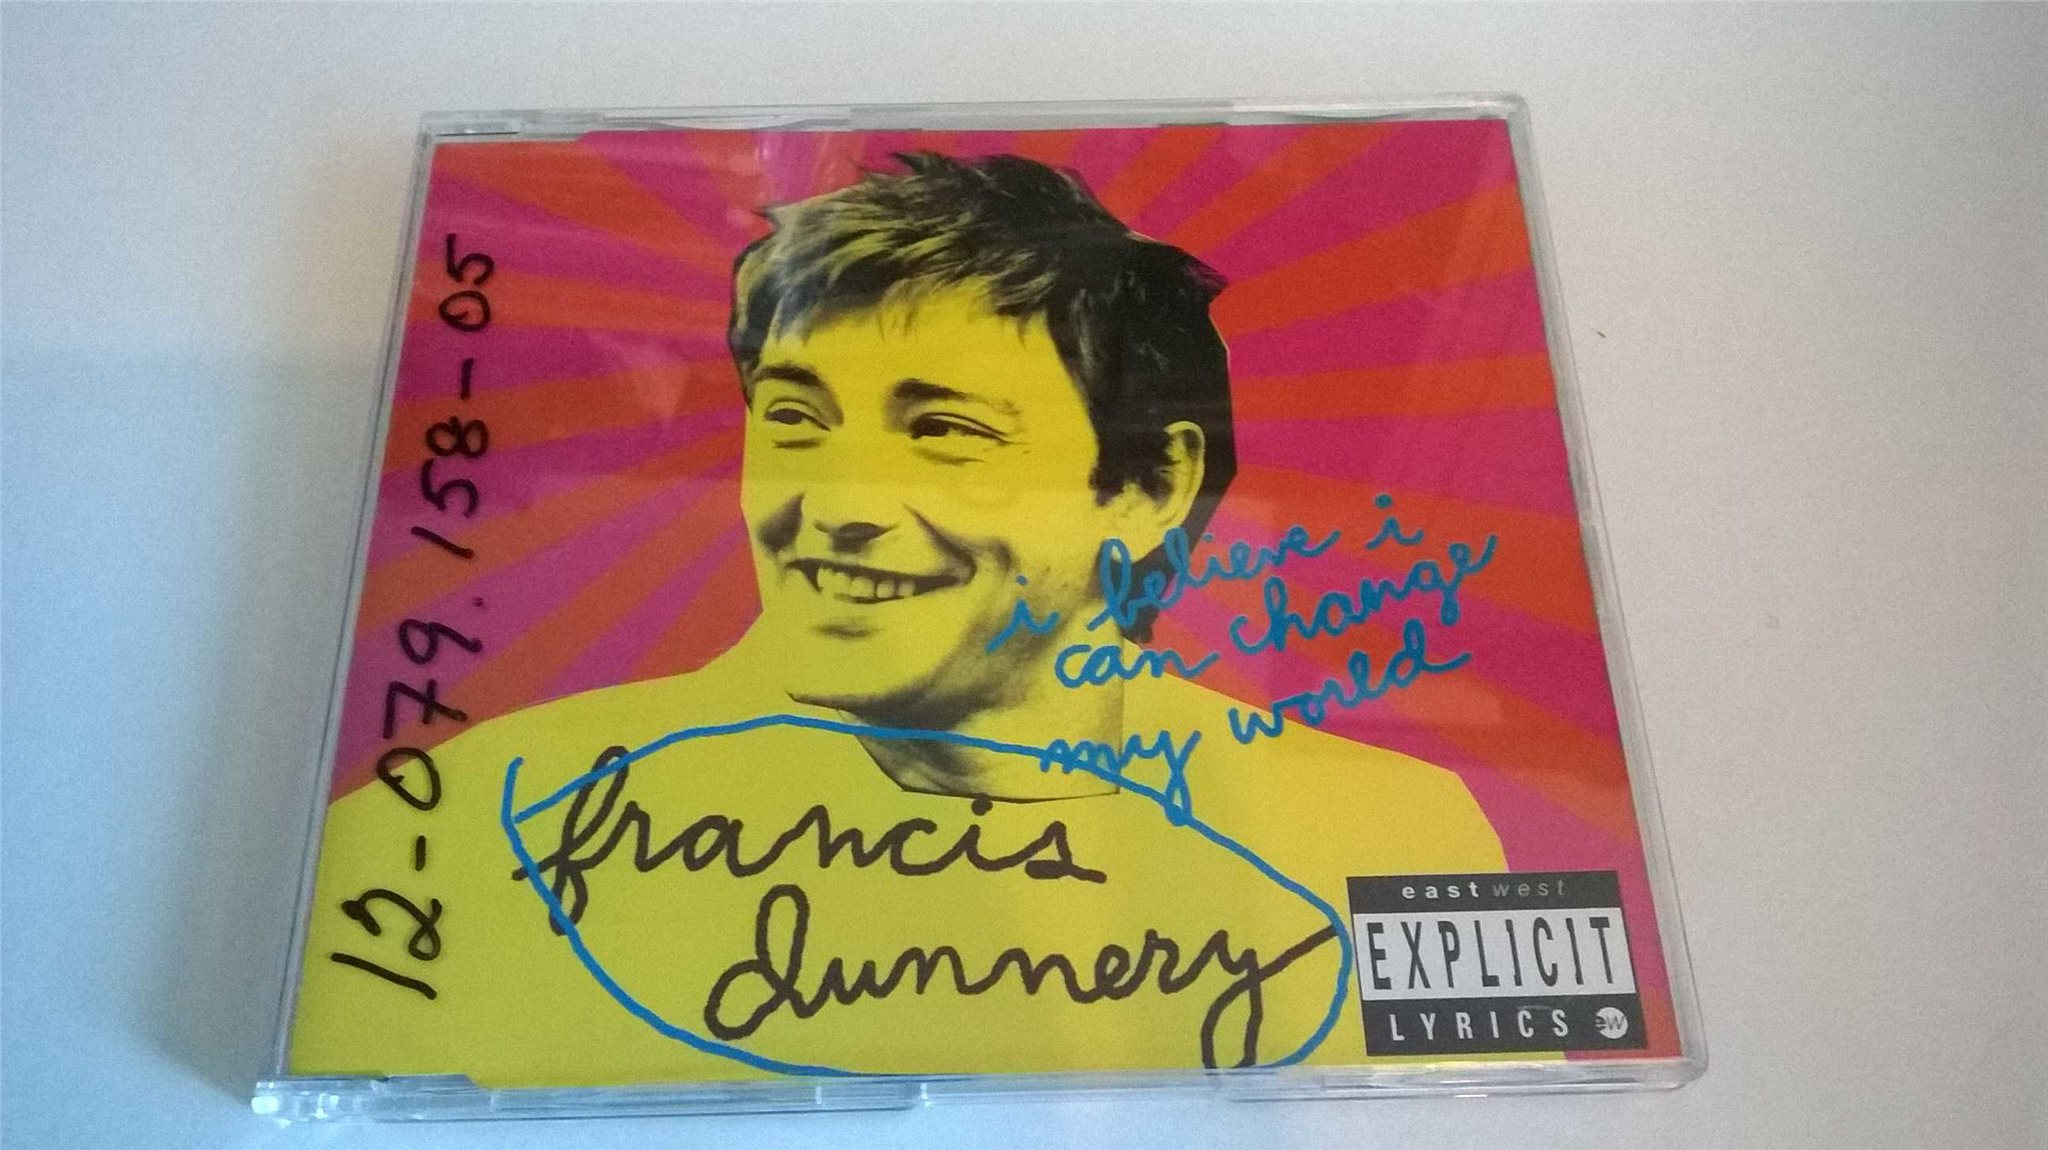 Francis Dunnery - I Believe I Can Change My World, CD